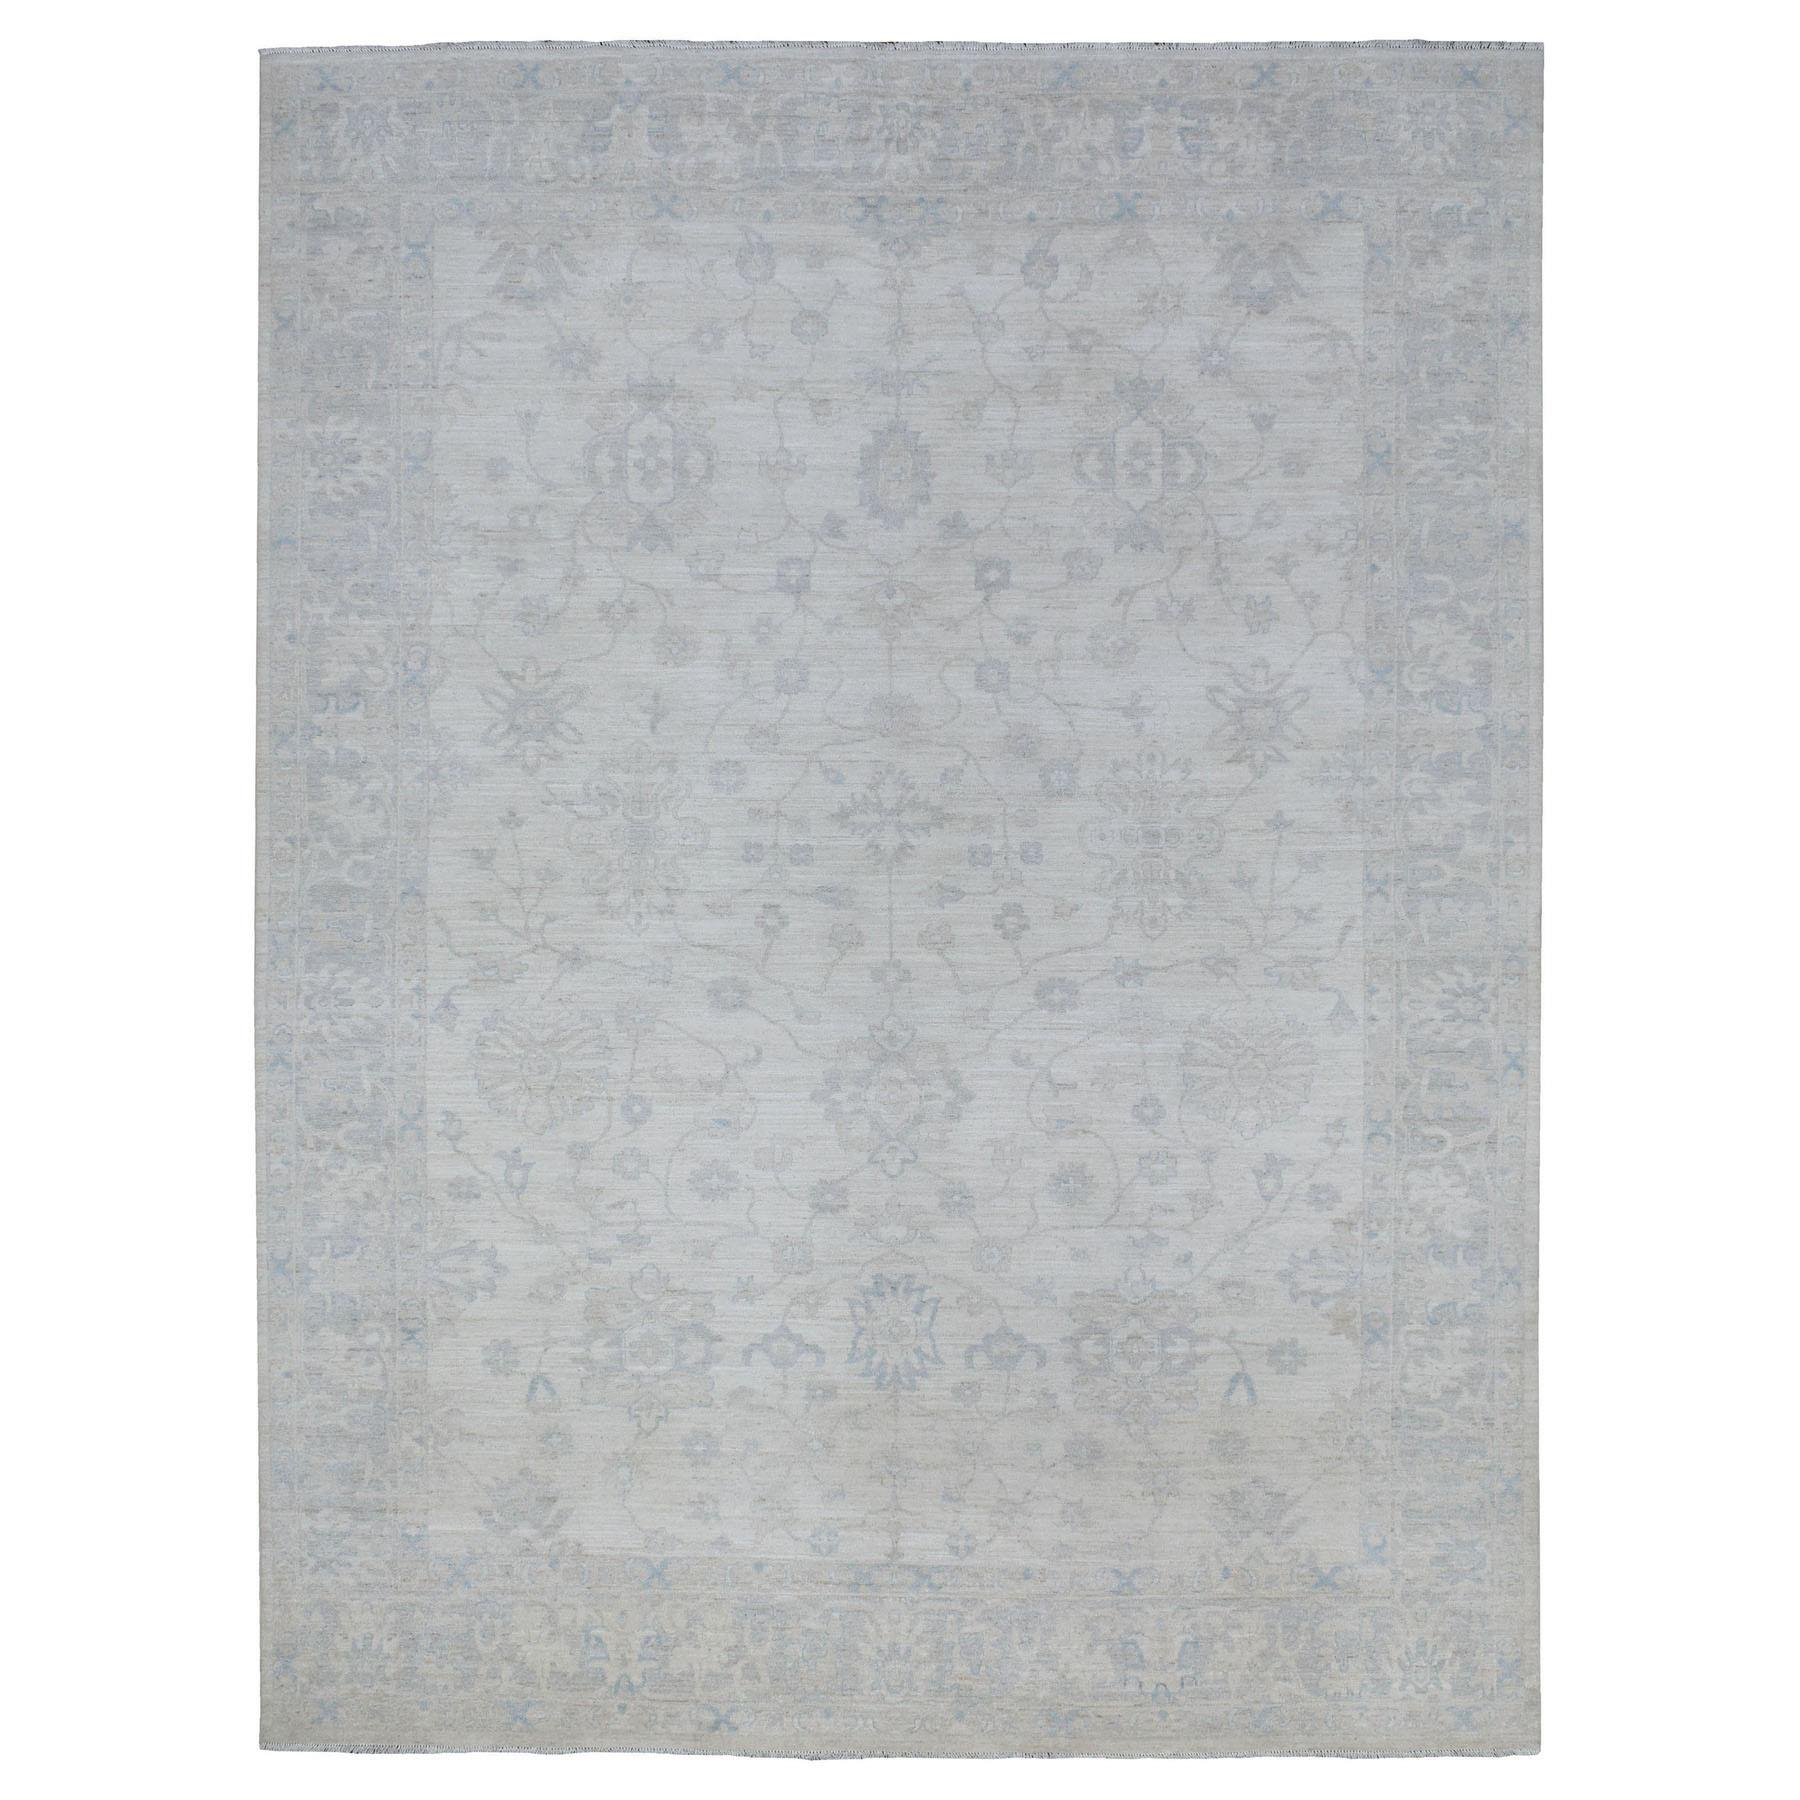 Soft, Velvety Plush White Wash Peshawar Hand Knotted 100% Wool Extremely Durable Oriental